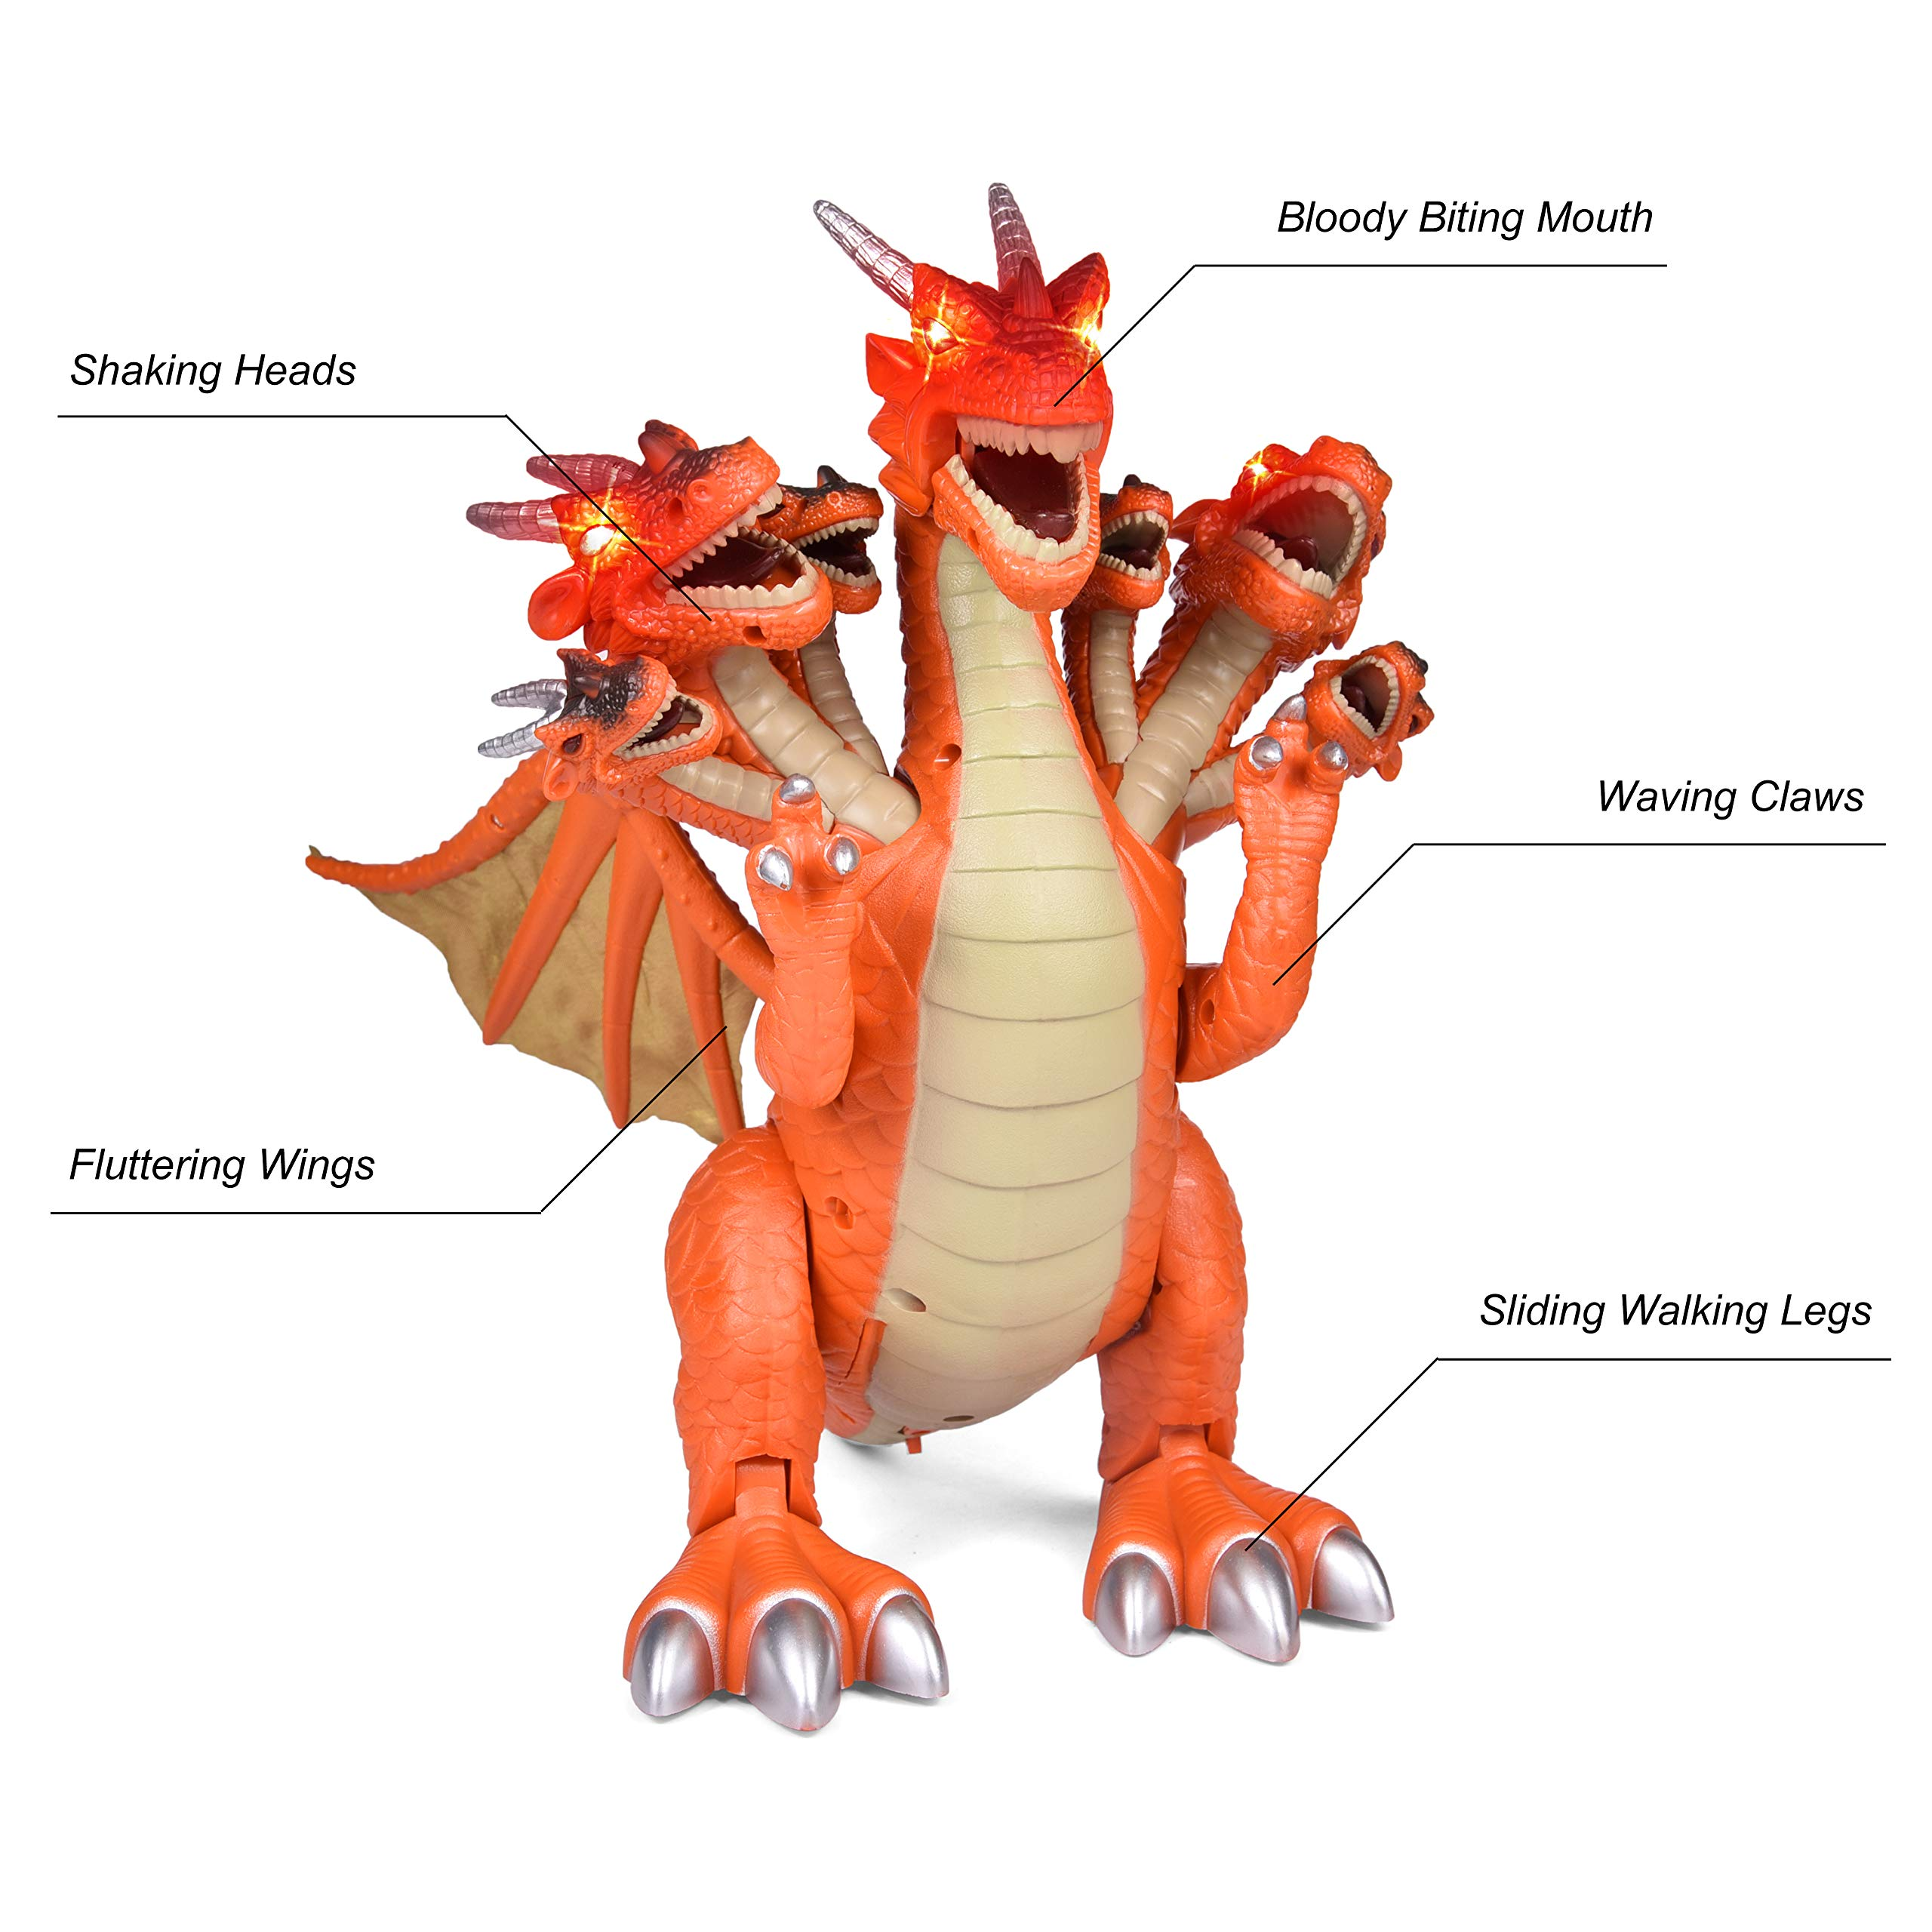 Dragon Toys for Boys, Seven Heads Walking Dragon 11.8''(L)×11.4''(H) Large Size with Lights and Sounds by FUN LITTLE TOYS (Image #2)